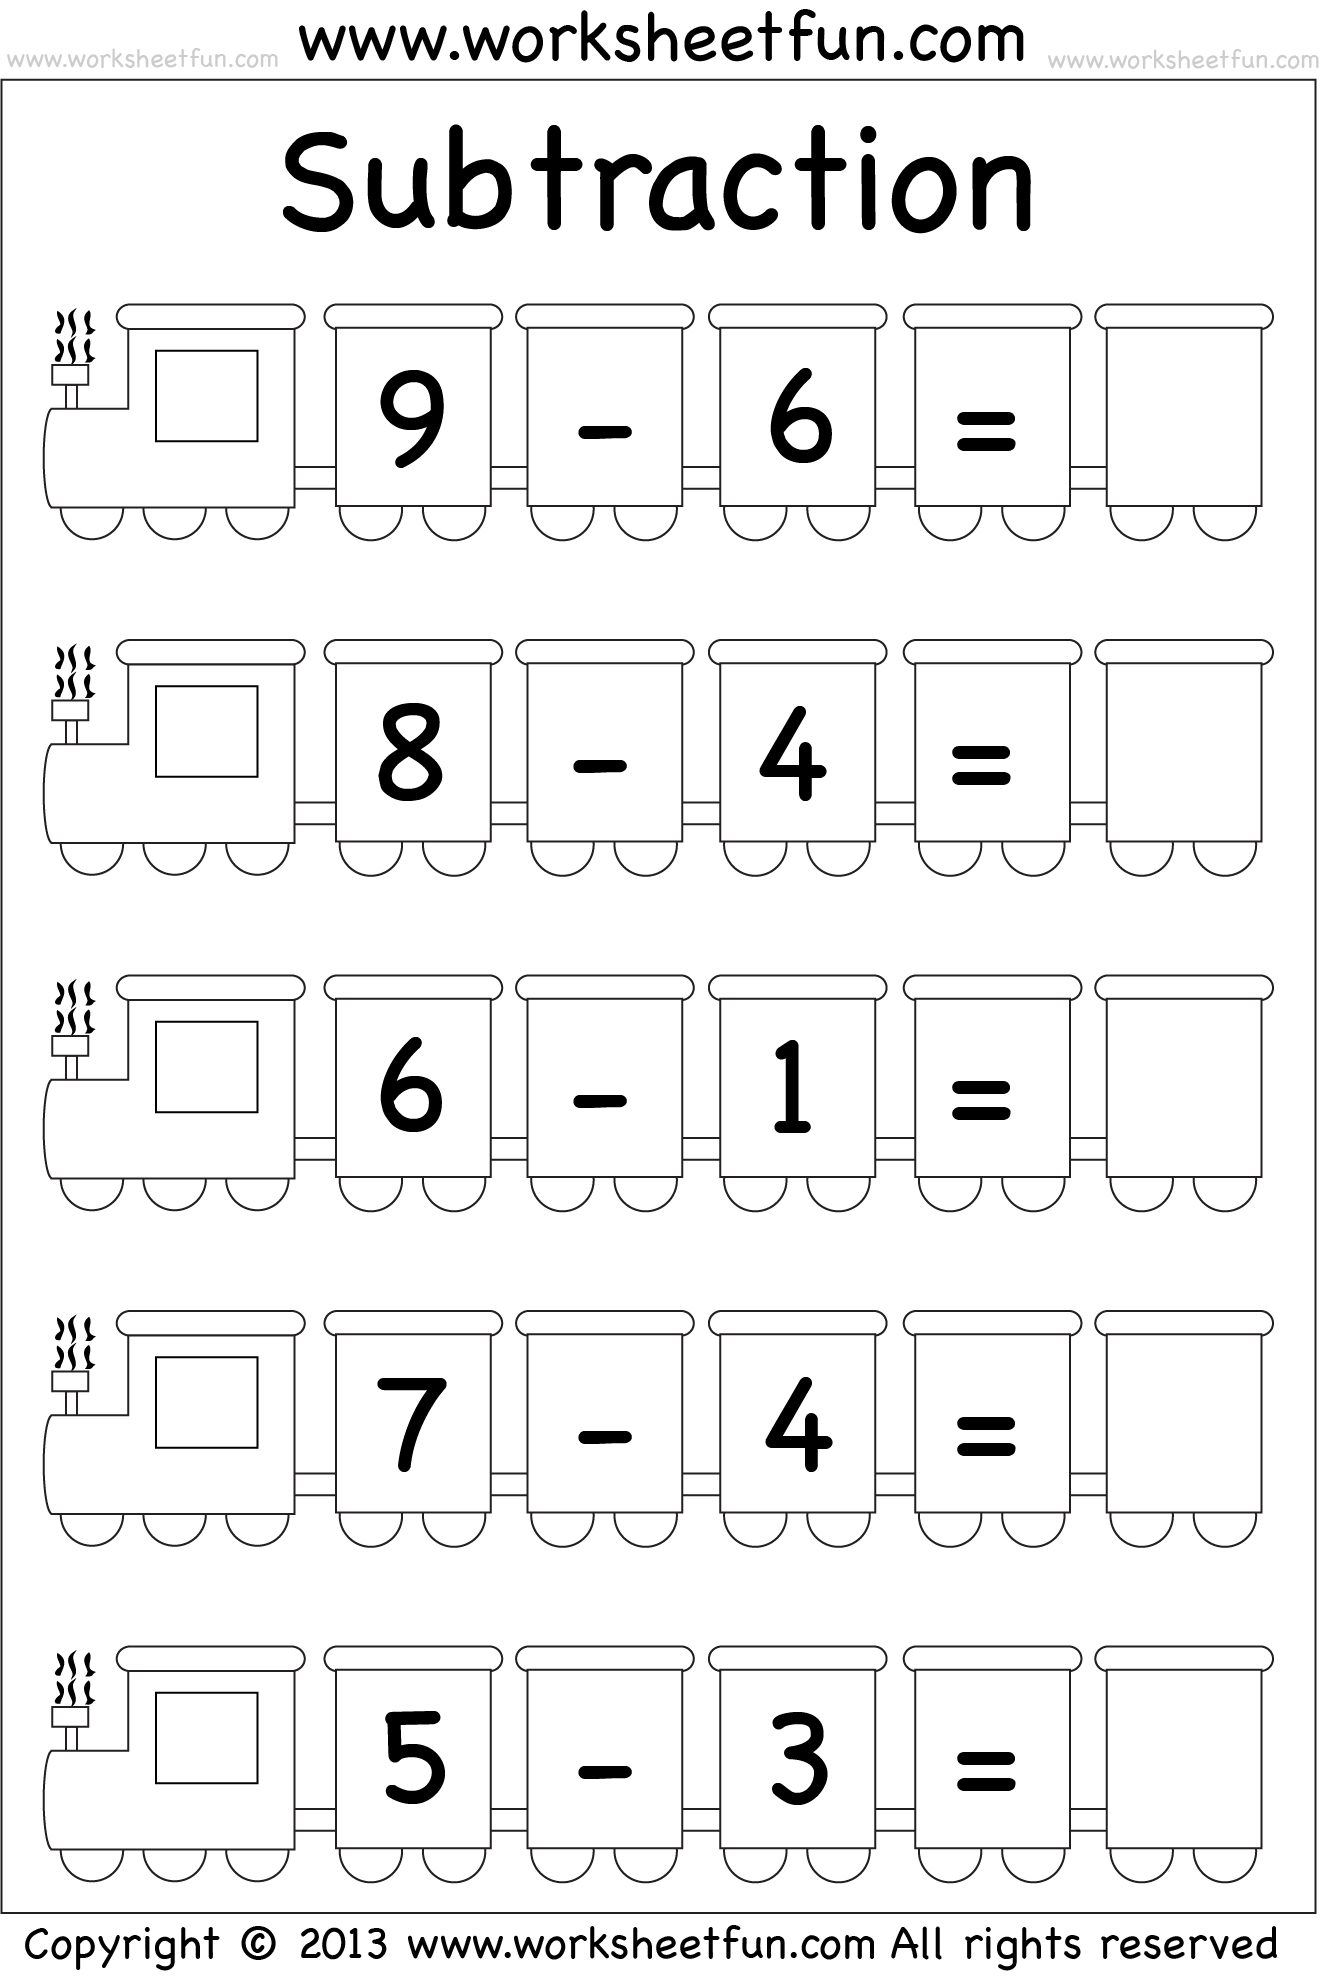 Beginner Subtraction 5 Kindergarten Subtraction Worksheets Free Printable Worksheets